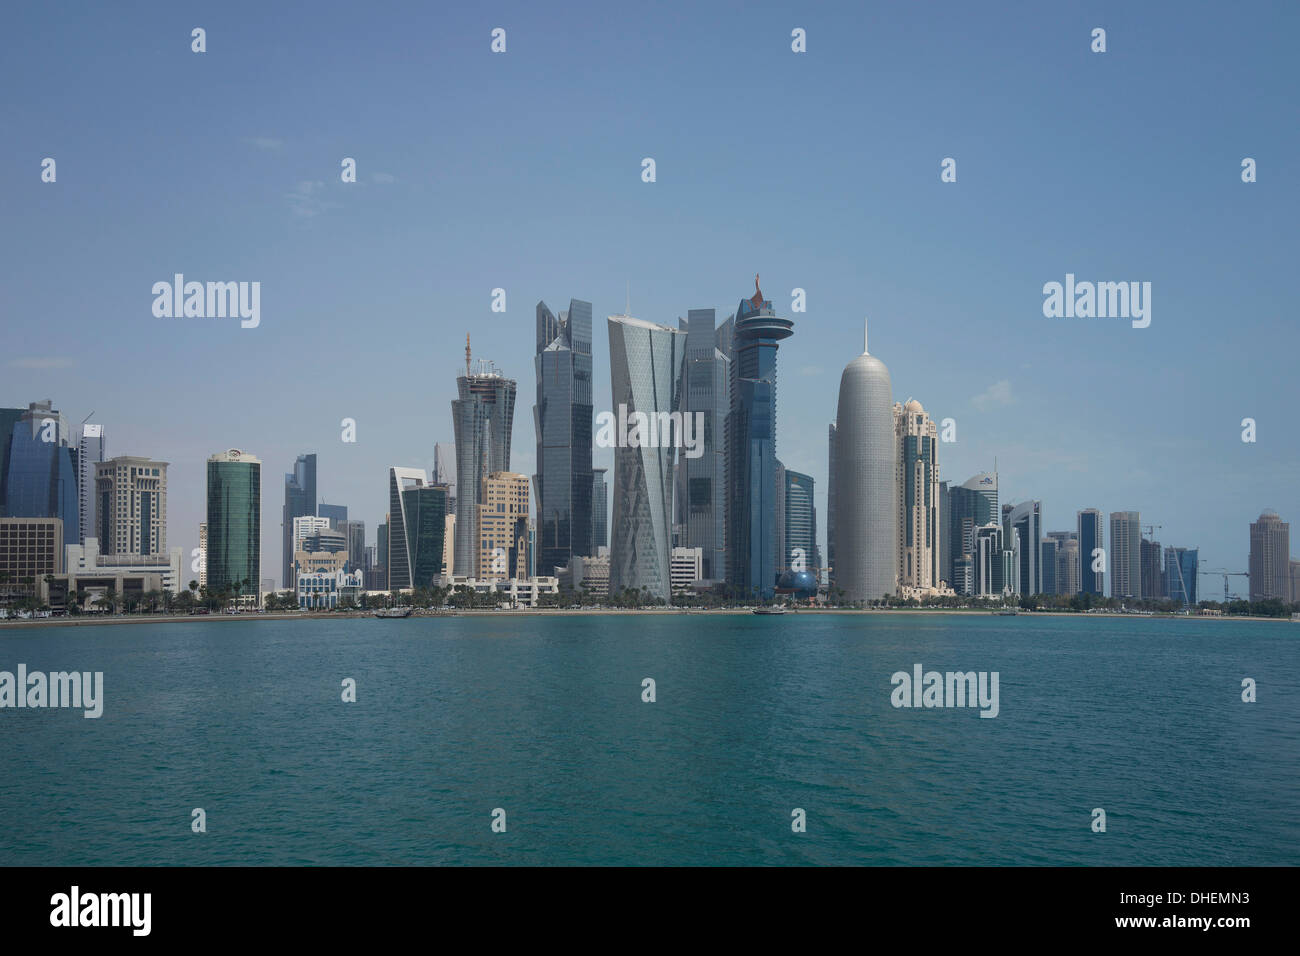 Futuristic skyscrapers in Doha, Qatar, Middle East Stock Photo